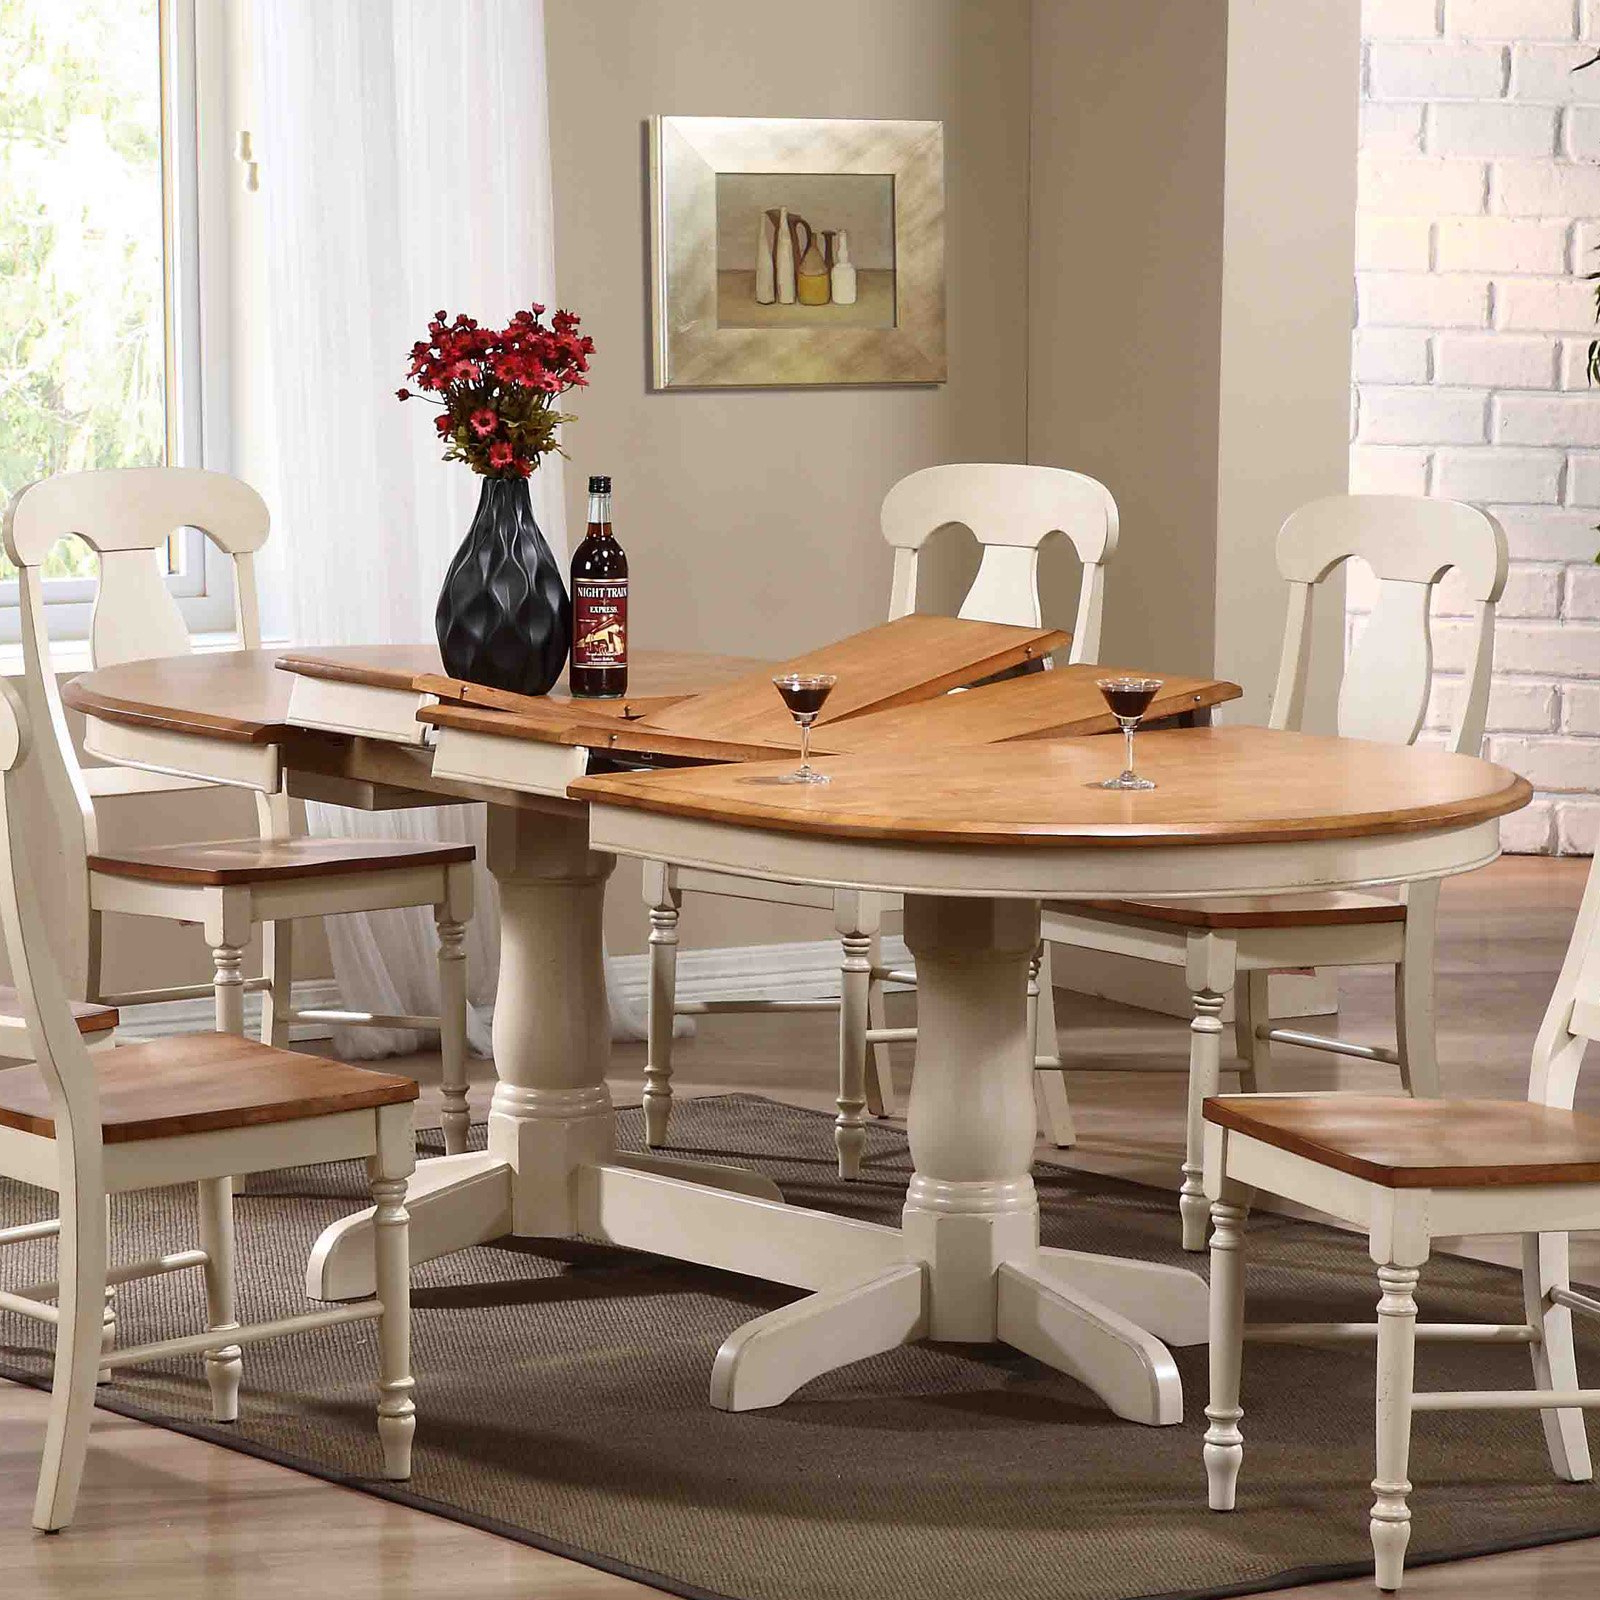 Stylish Small Farmhouse Dining Table Cheap Furniture For Intended For Most Current Small Rustic Look Dining Tables (View 21 of 25)